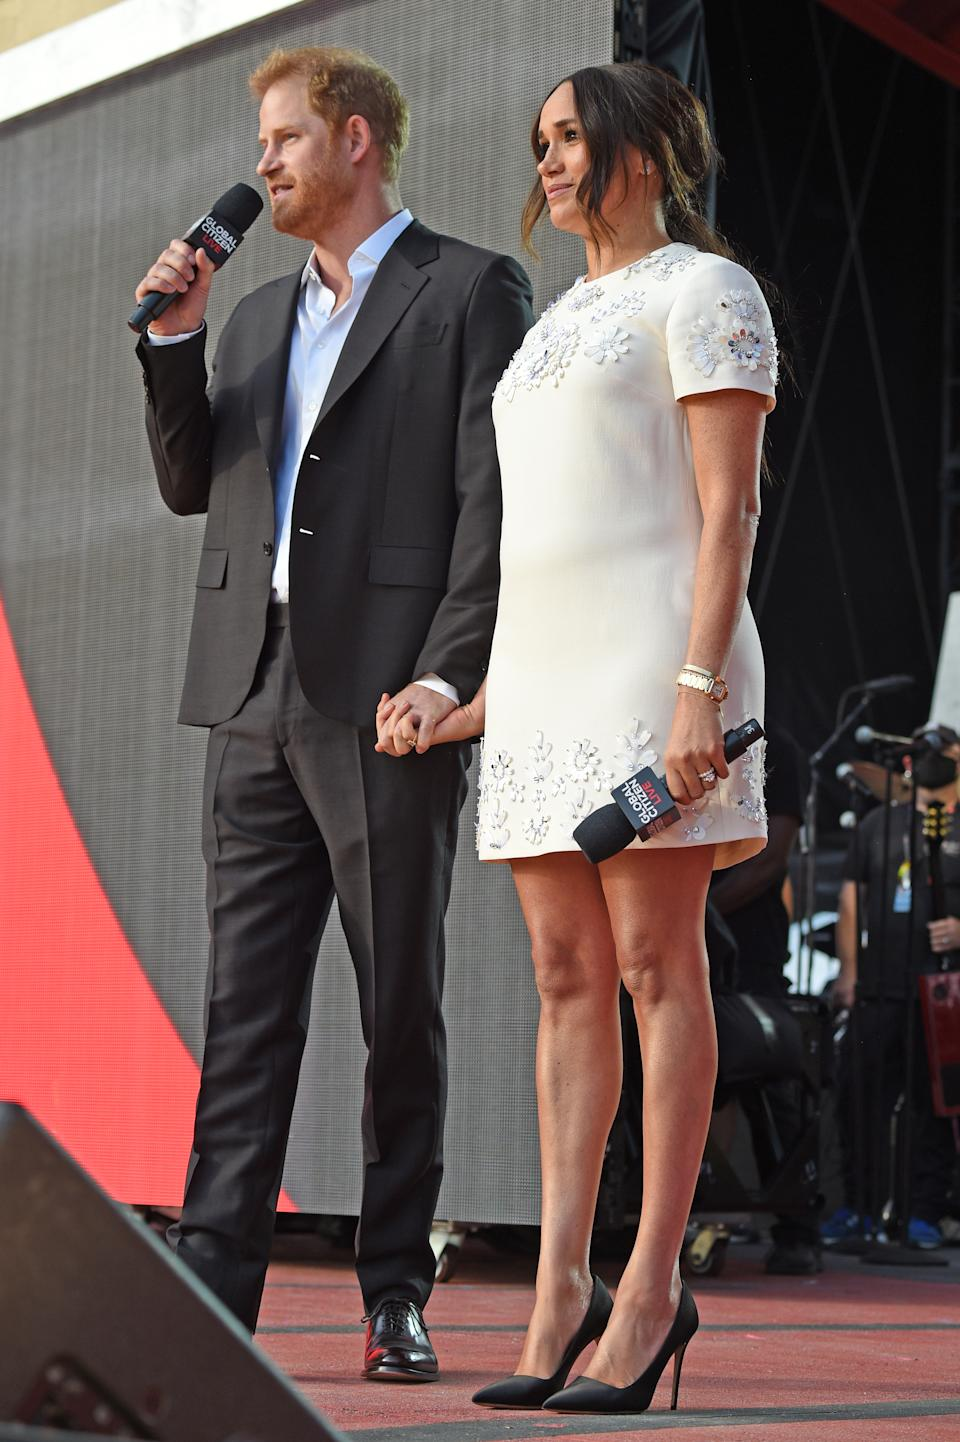 Prince Harry and Meghan Markle speak onstage during Global Citizen Live, New York on September 25, 2021 in New York City